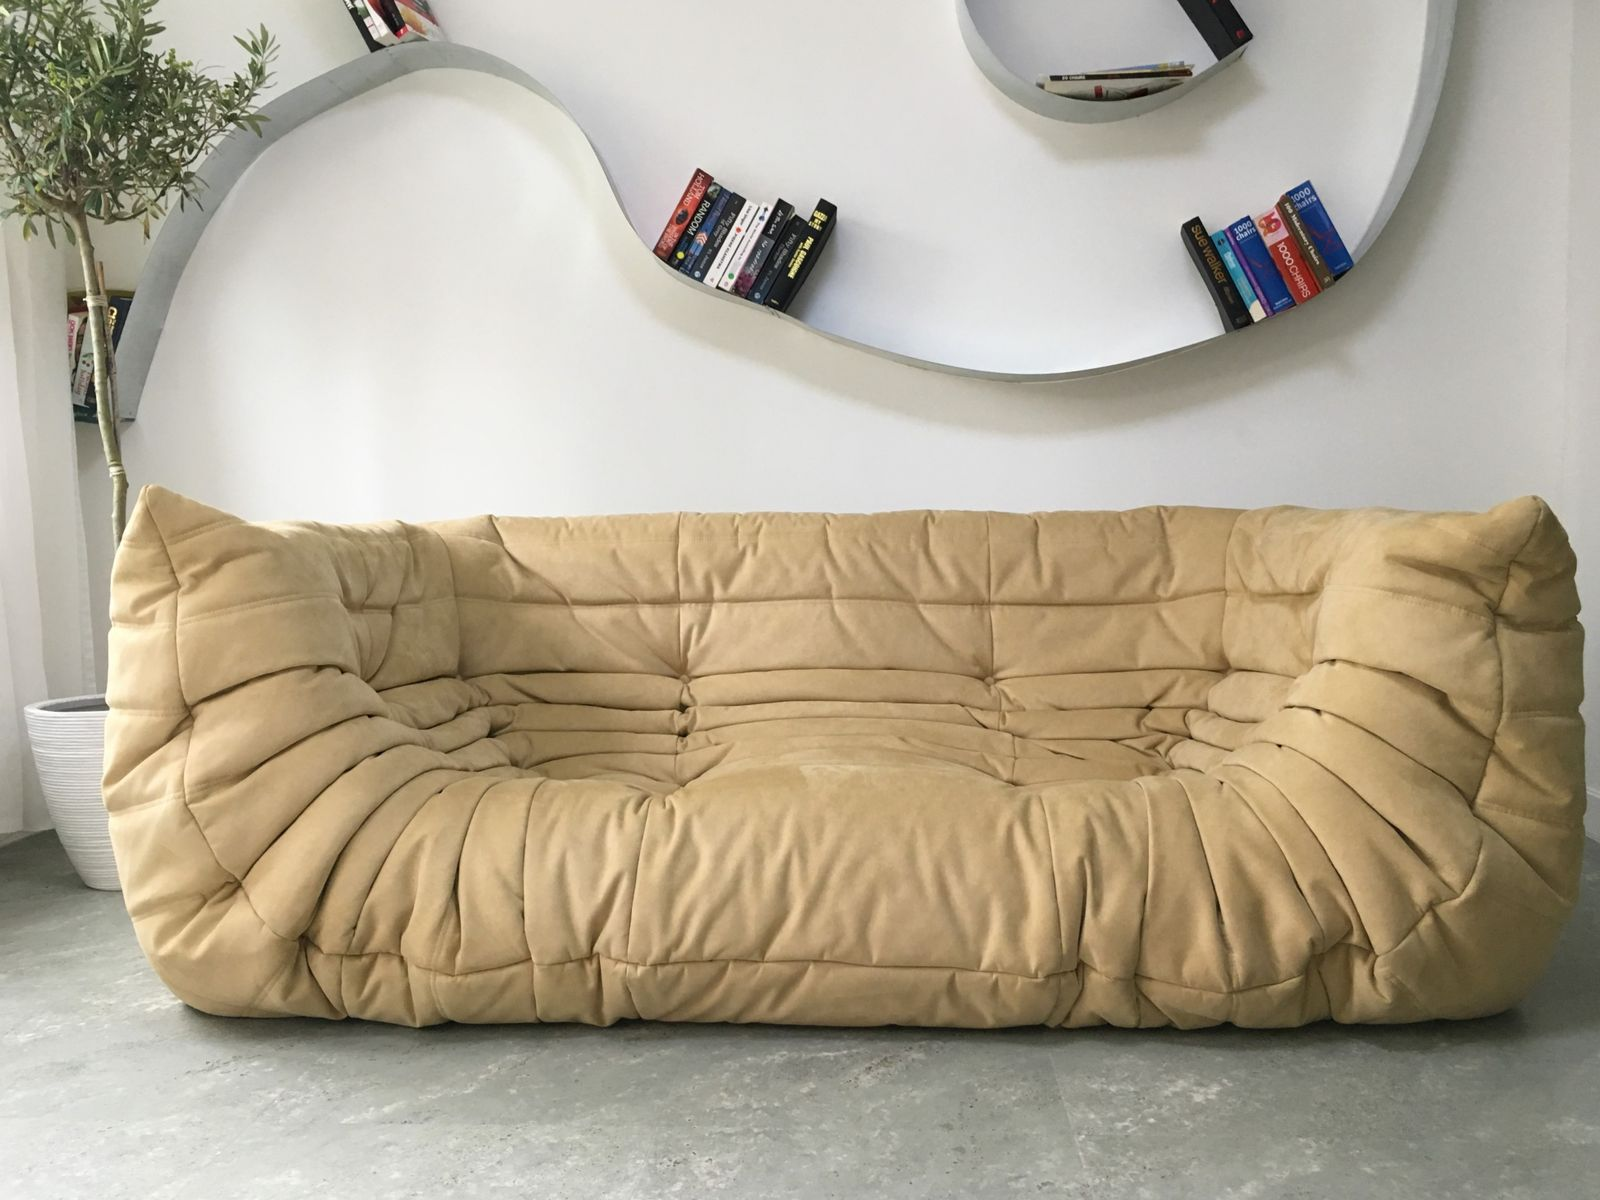 Togo sofa by michel ducaroy for ligne roset 1960s for sale at pamono - Togo ligne roset ...